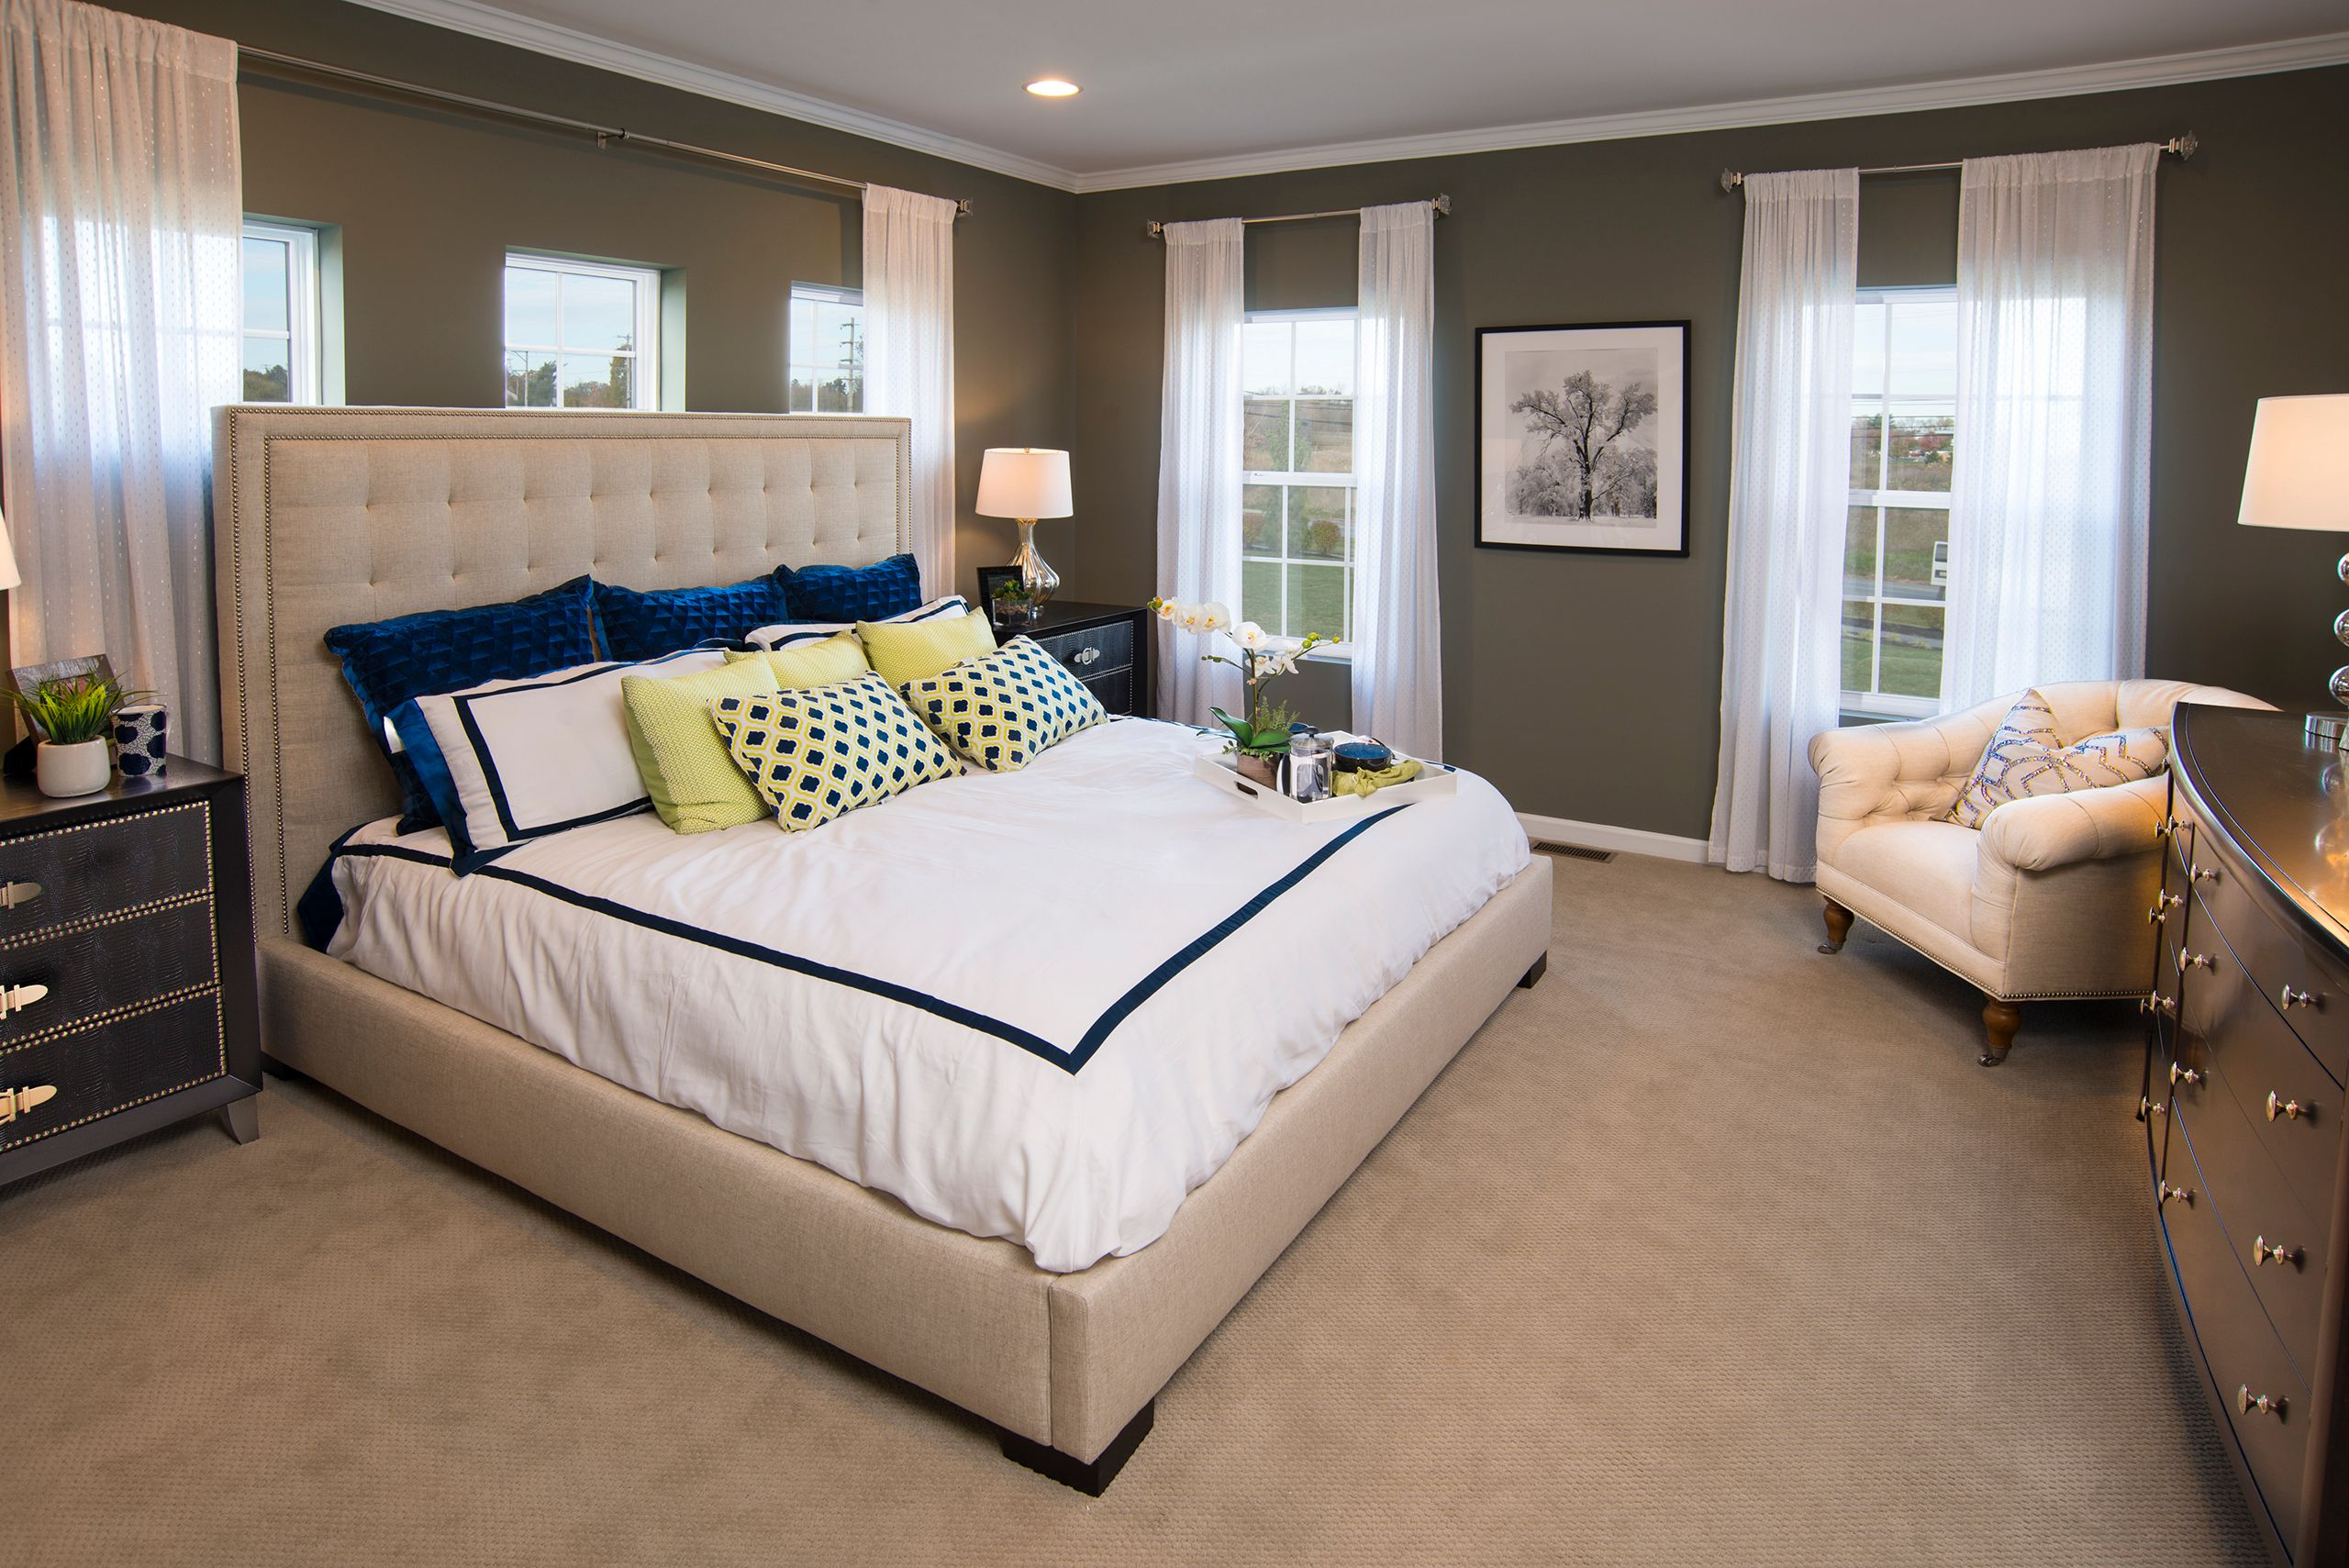 Bedroom featured in the Milton Vintage By Keystone Custom Homes in Philadelphia, PA